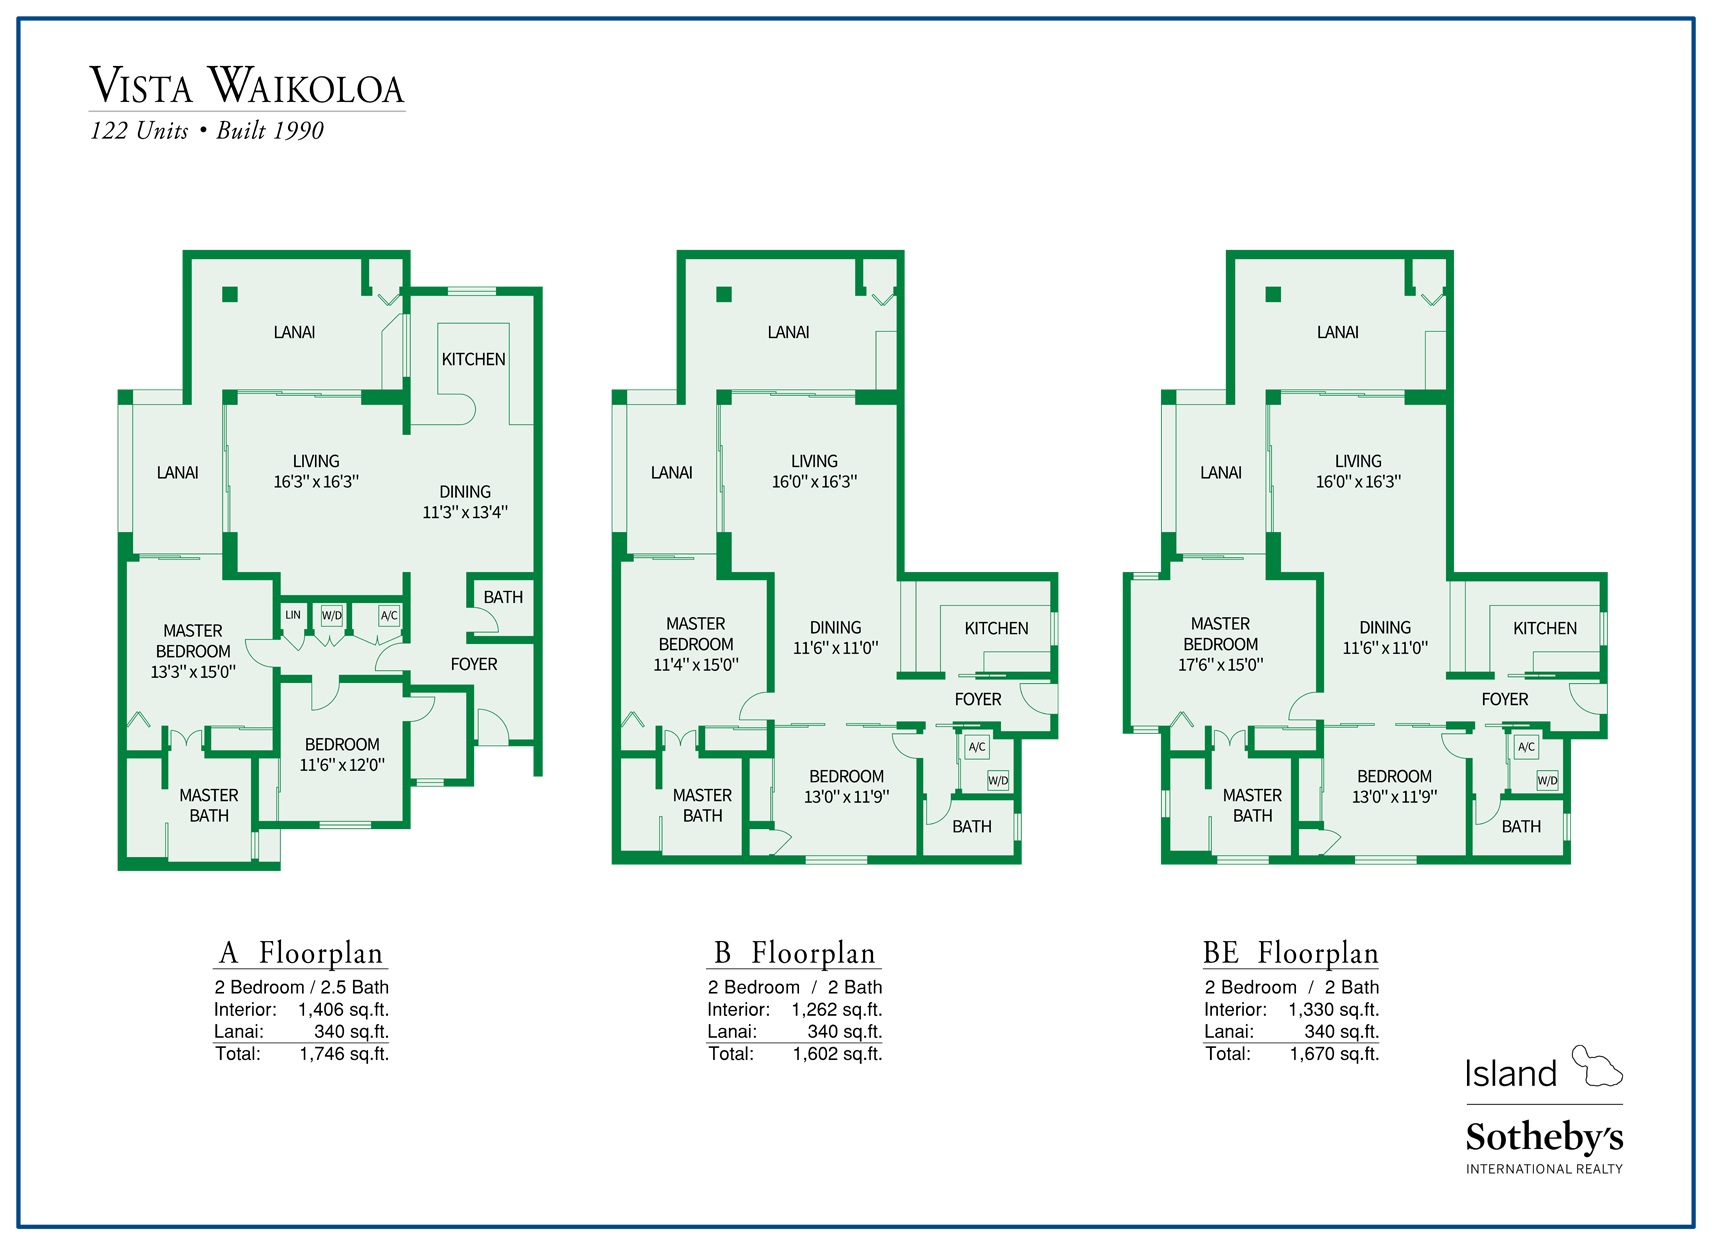 vista waikoloa floor plans